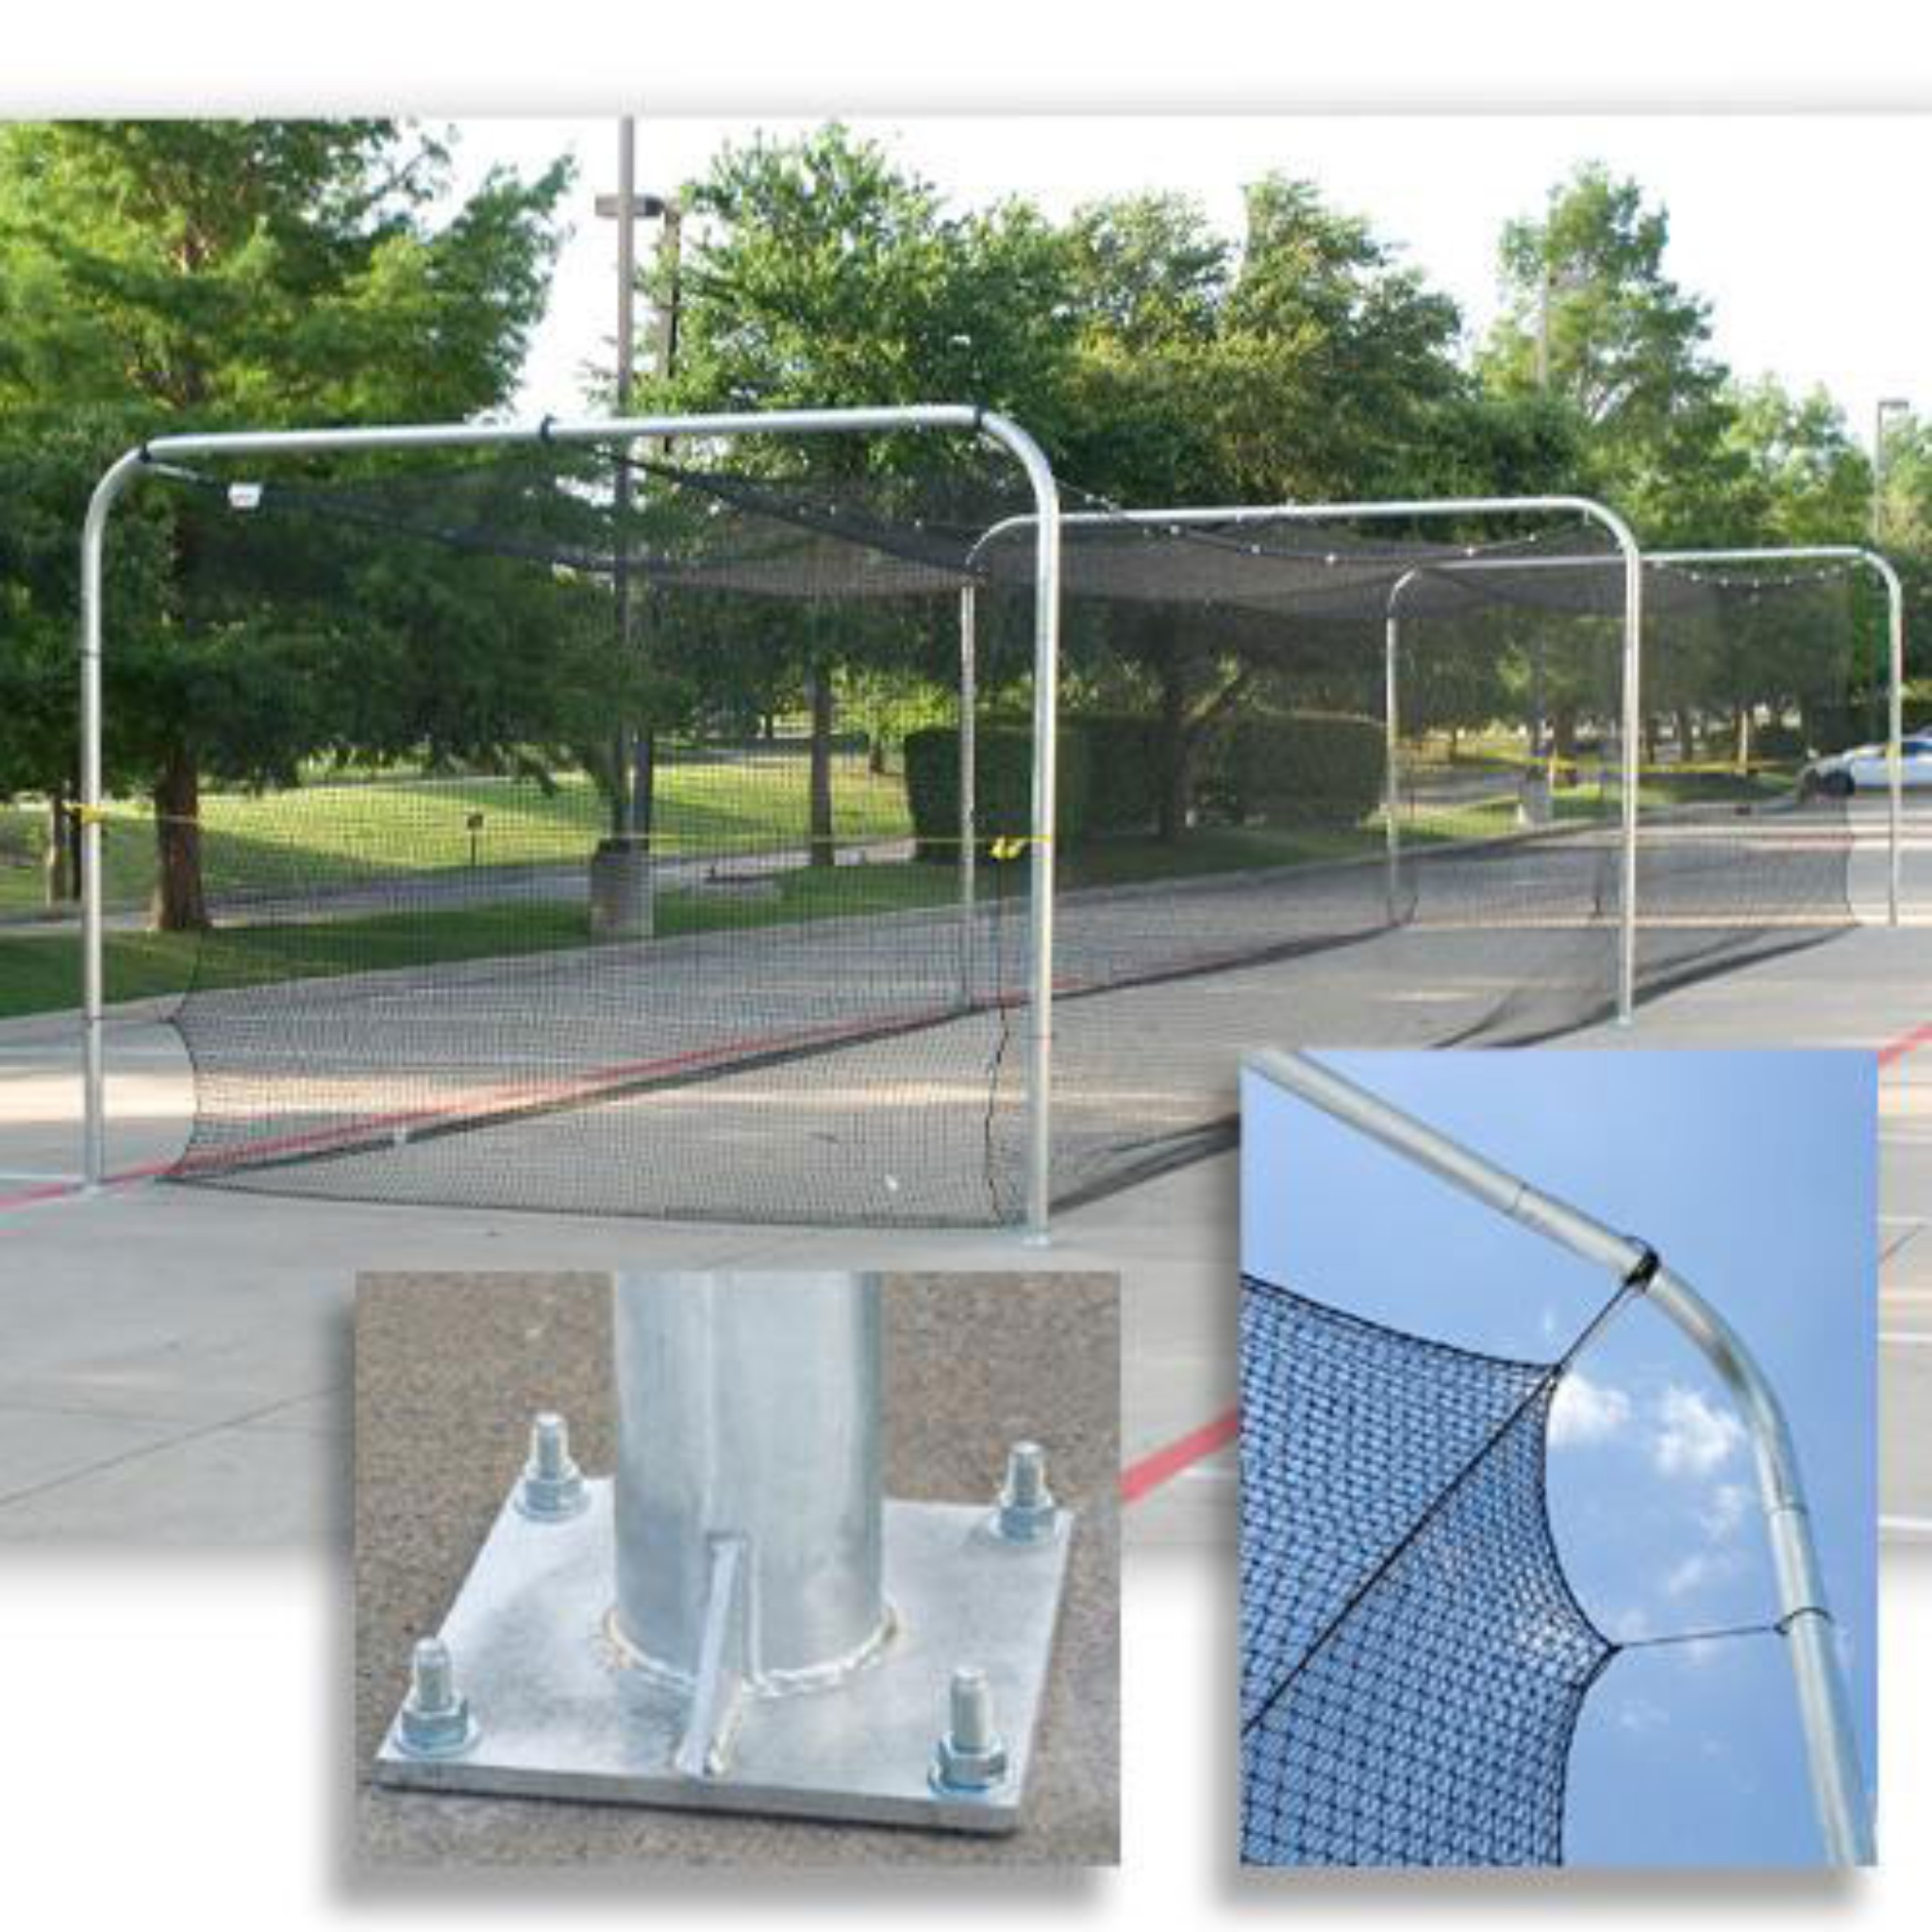 Batting Tunnel Frames are Heavy-Duty Galvanized Steel Pipes and Come in 3-Section Frames for a 55' Tunnel and 4-Section Frames for a 70' Tunnel.